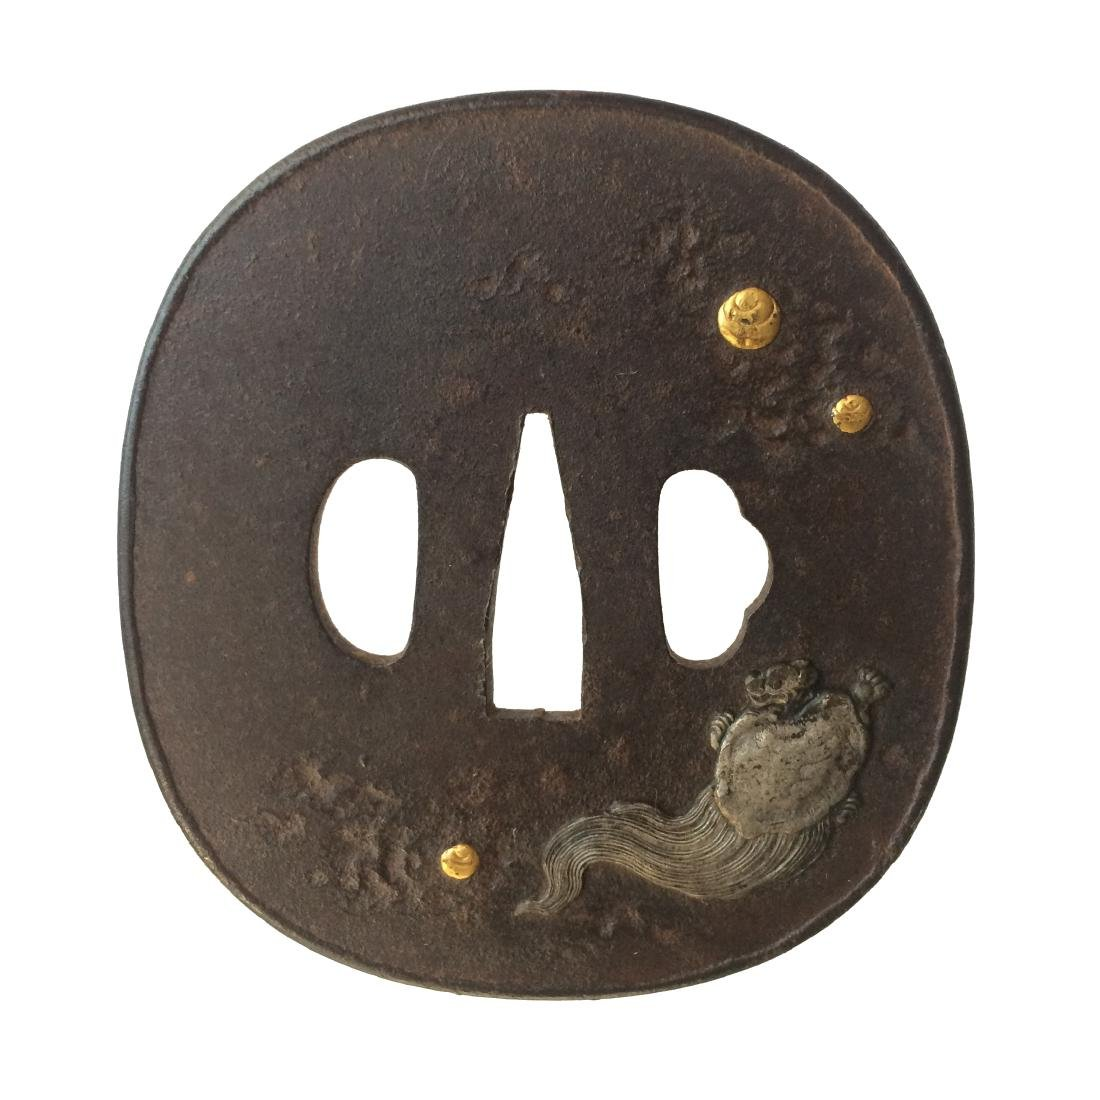 Iron tsuba with gold and silver inlay